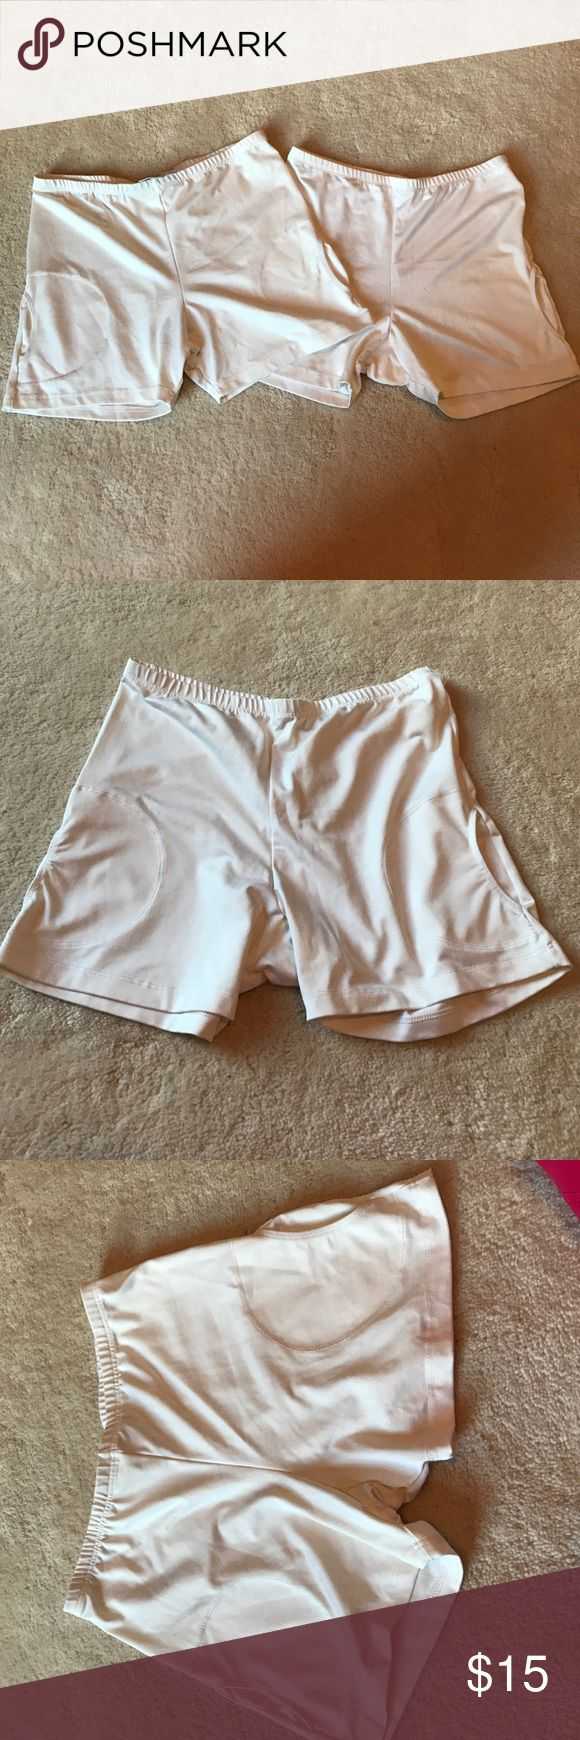 Pair of Tail Tennis Shorts Two pairs if white shorts. Feel free to ask questions or make an offer! Tail Shorts